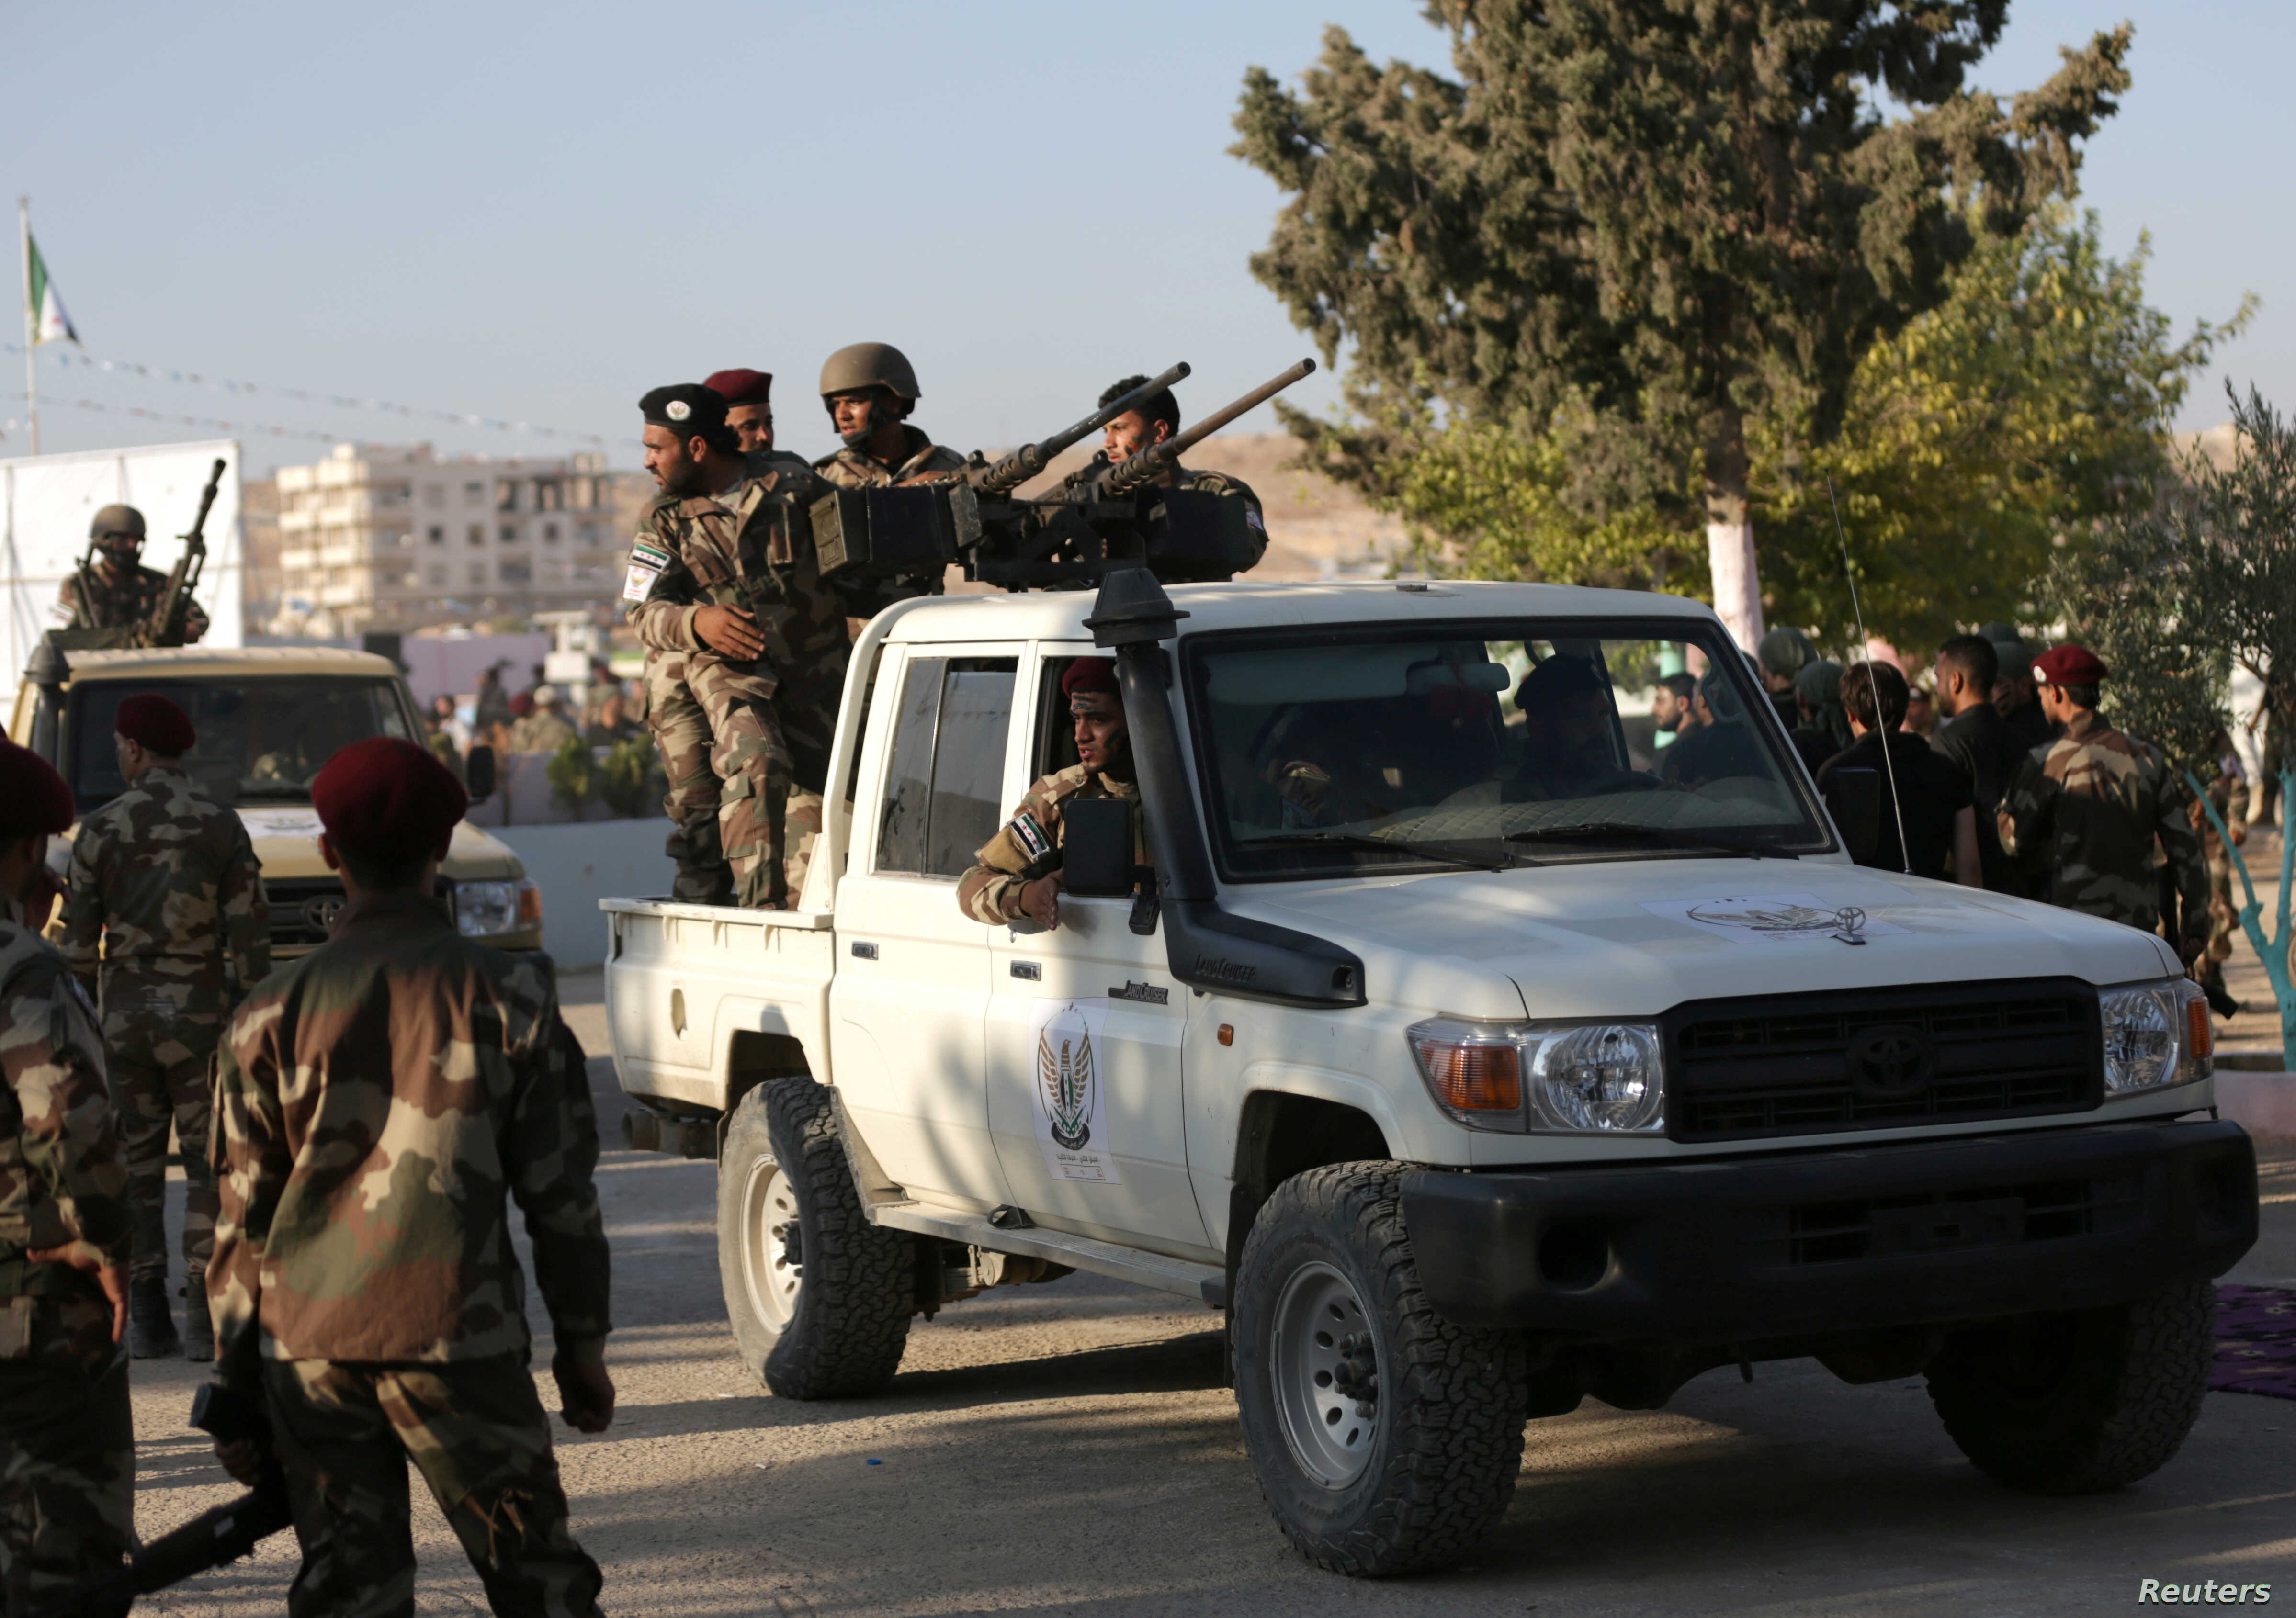 FILE - Fighters of National Army, backed by Turkey, stand at a back of a truck in the city of al-Bab, Syria, Aug. 5, 2018.